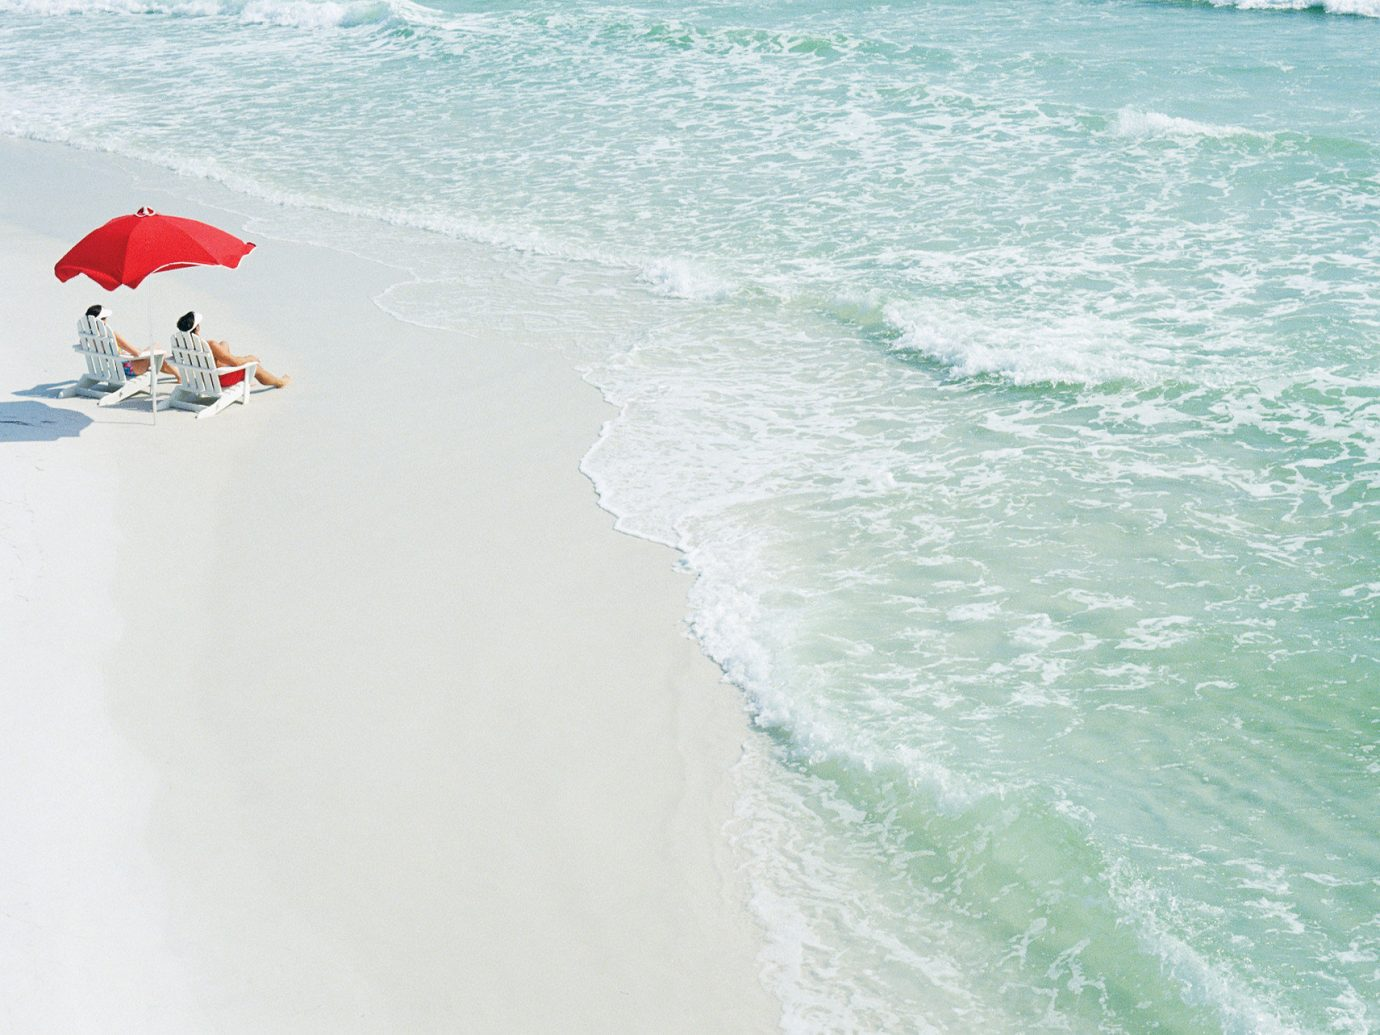 Beach blue water couple sunbathing umbrella white sands water wind wave wave Ocean sports surfboard Sea Nature surfing equipment and supplies Coast extreme sport boardsport wind surface water sports surfing shore day